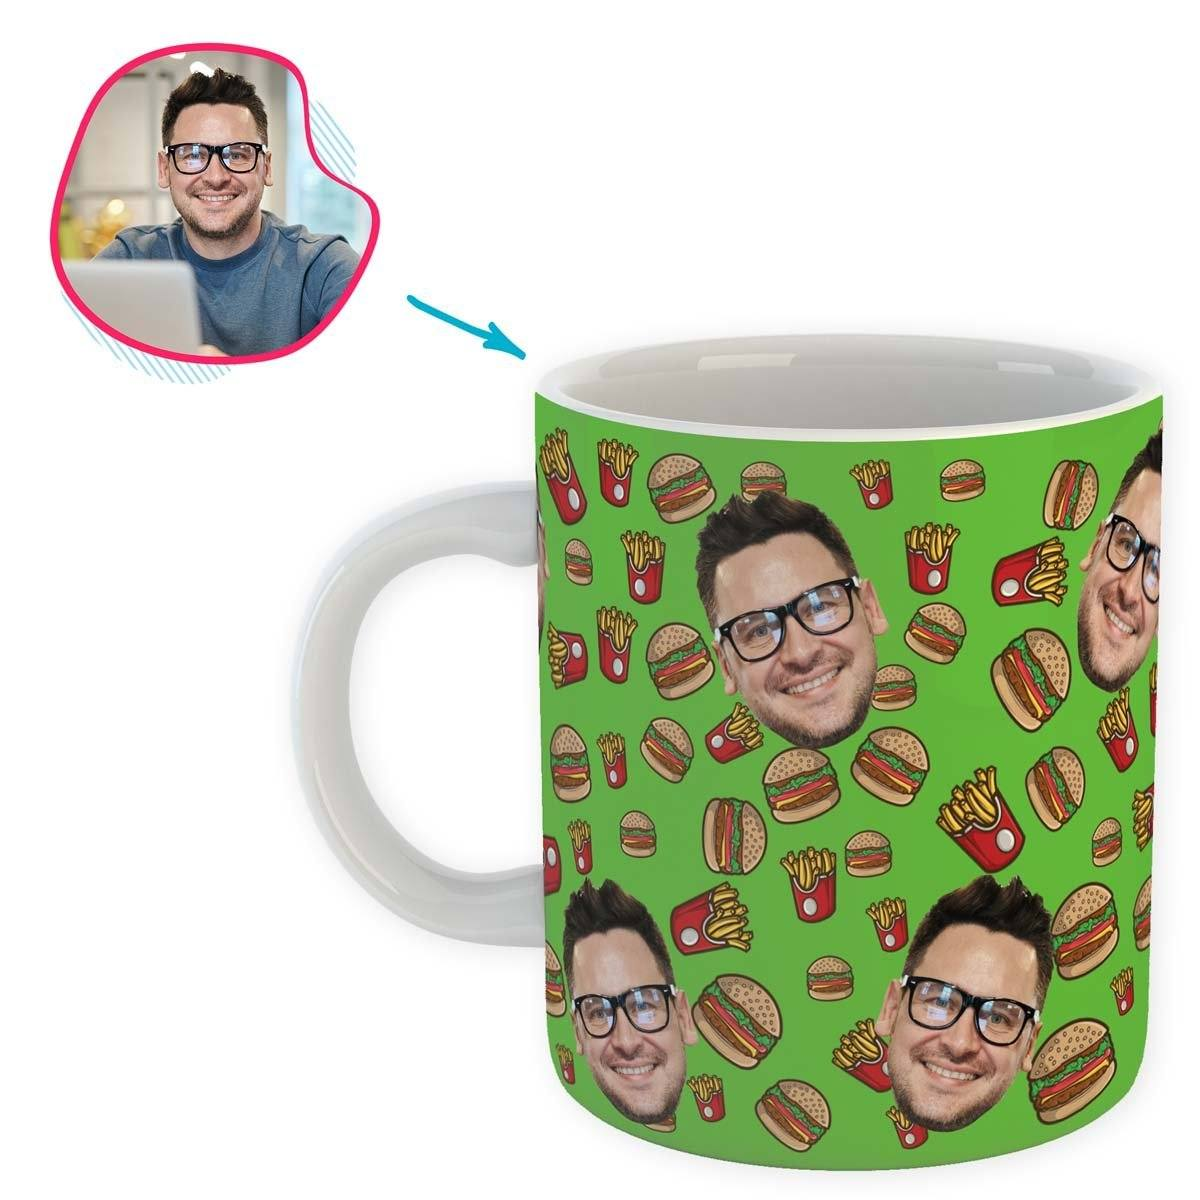 green Fastfood mug personalized with photo of face printed on it